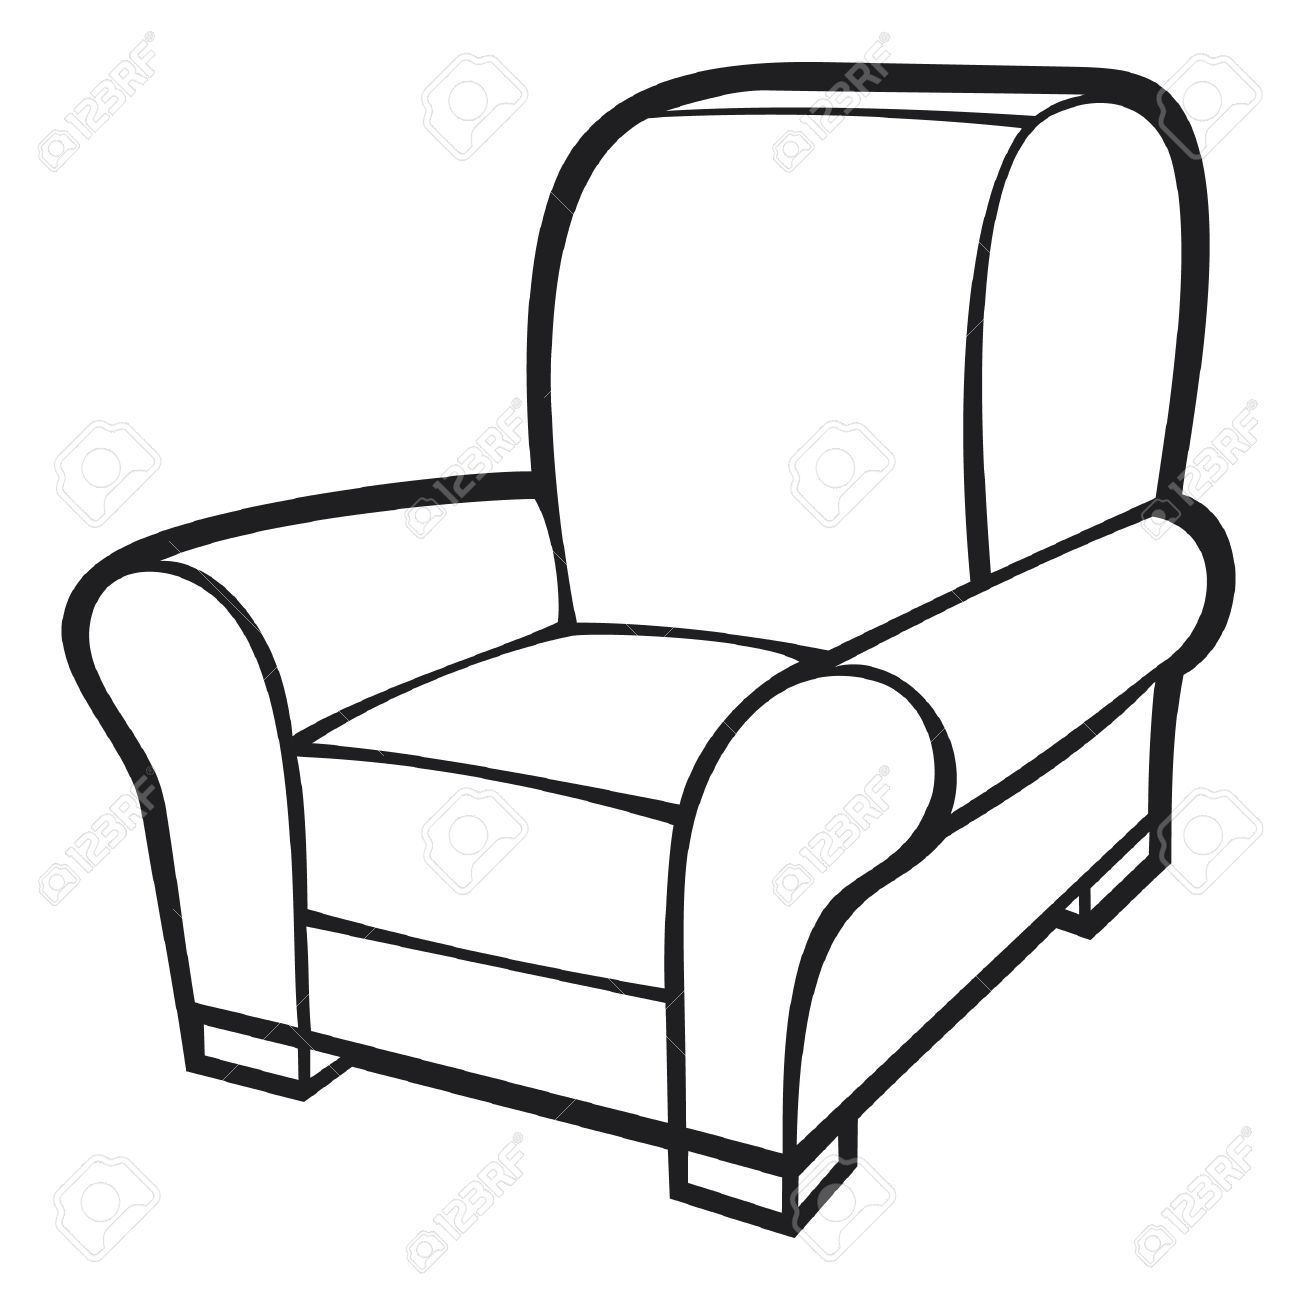 1297x1300 Sofa Nice Sofa Chair Clip Art Furniture Clipart Bedroom 1 Sofa